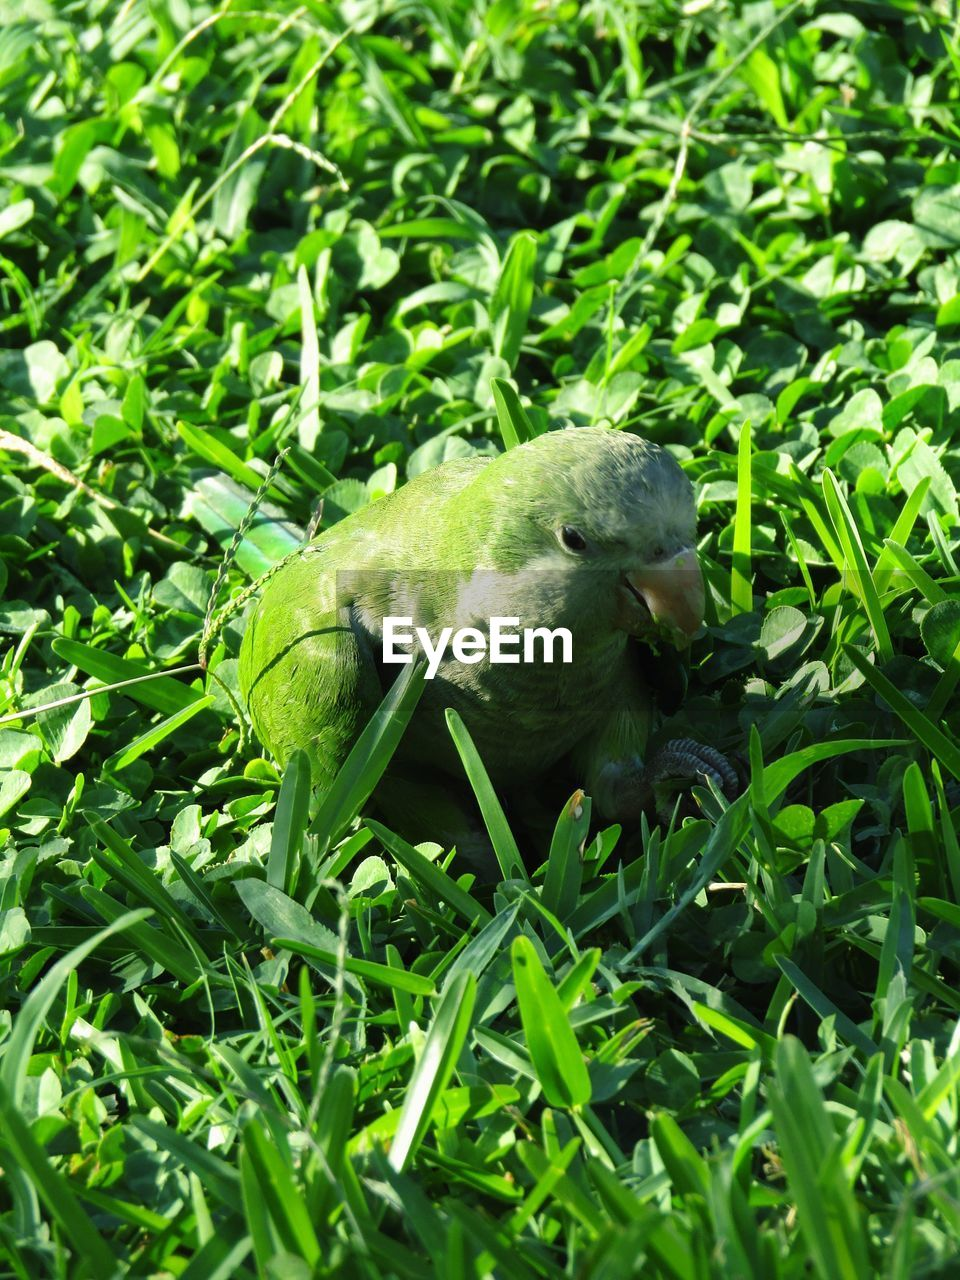 one animal, green color, animals in the wild, animal themes, grass, wildlife, growth, nature, plant, outdoors, no people, day, animal wildlife, field, leaf, bird, close-up, mammal